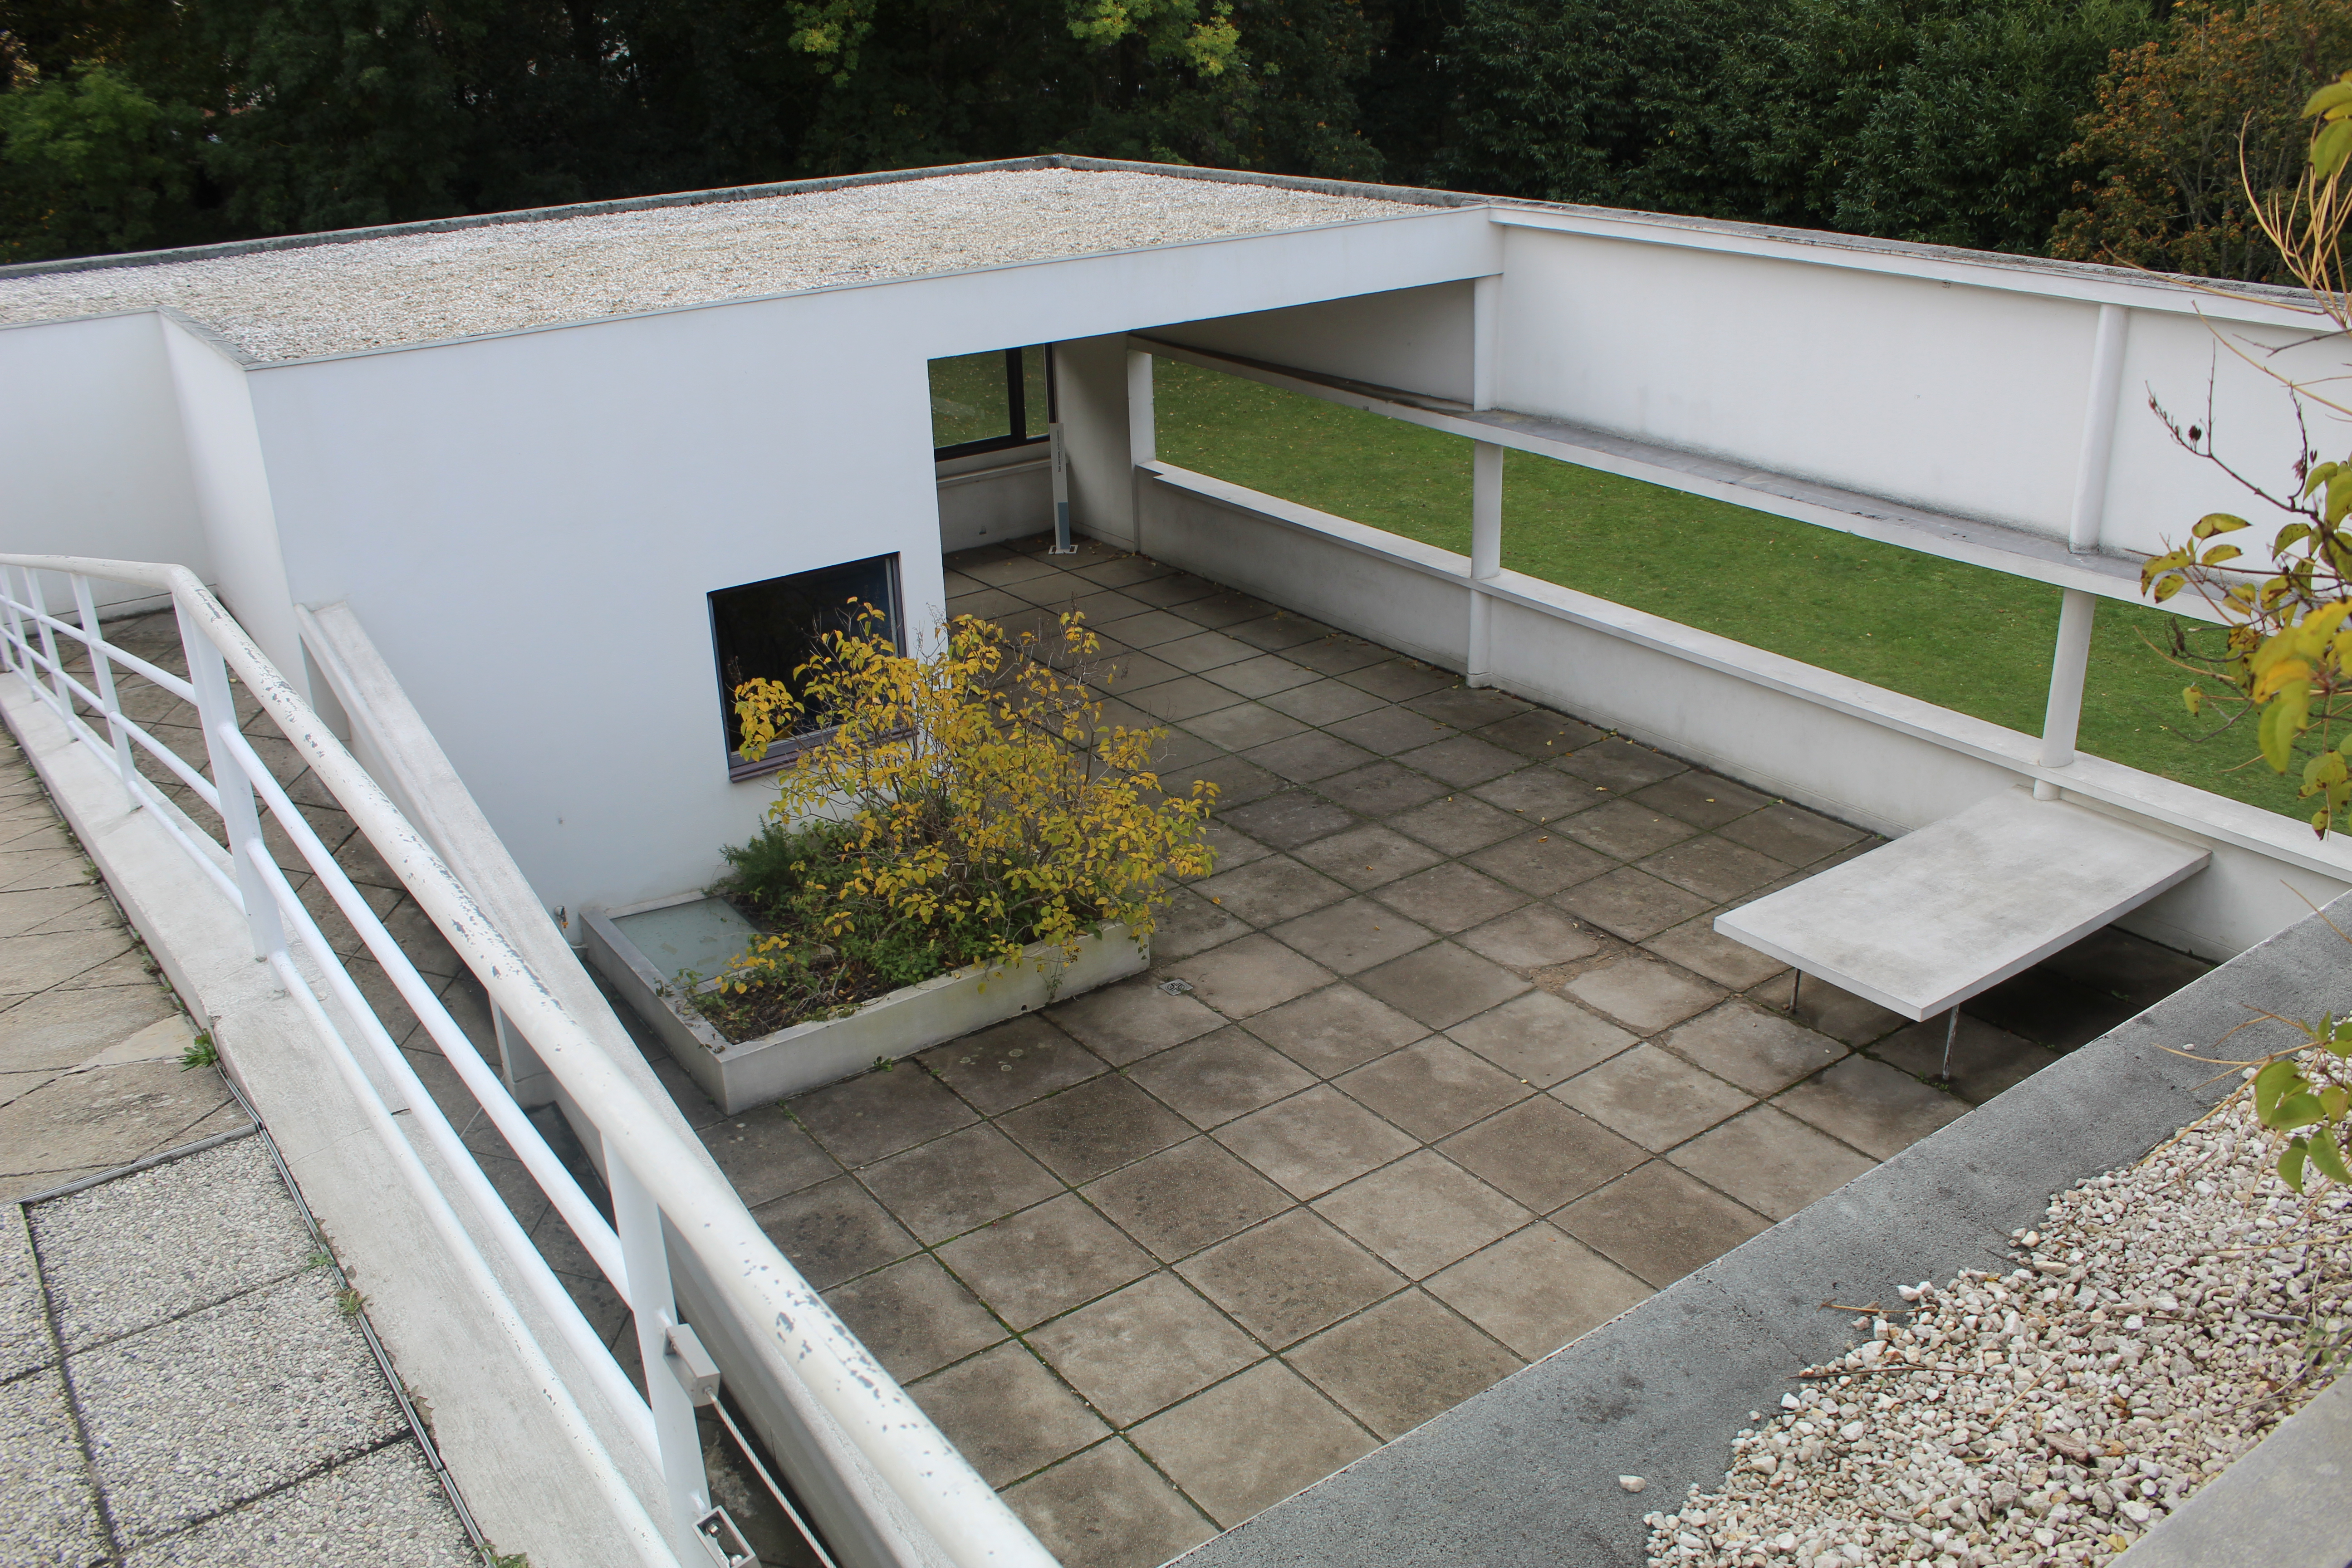 Concrete rooftop with ramp and vegetation in planters.